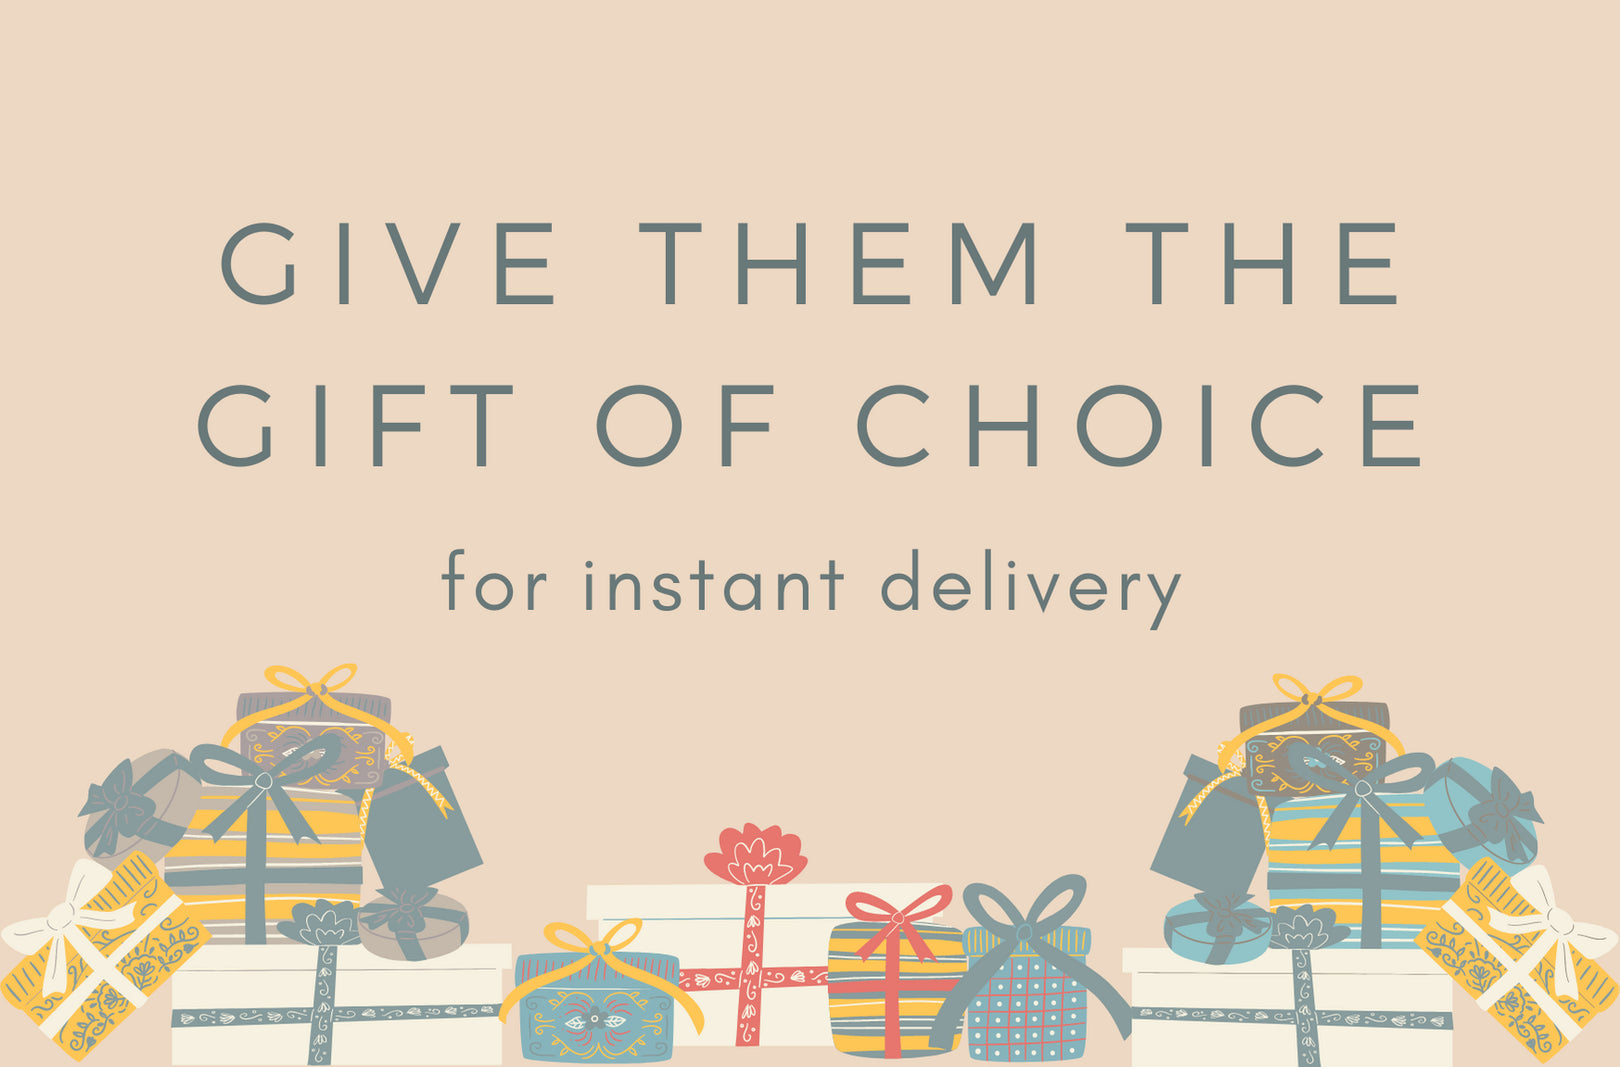 Give them the gift of choice.